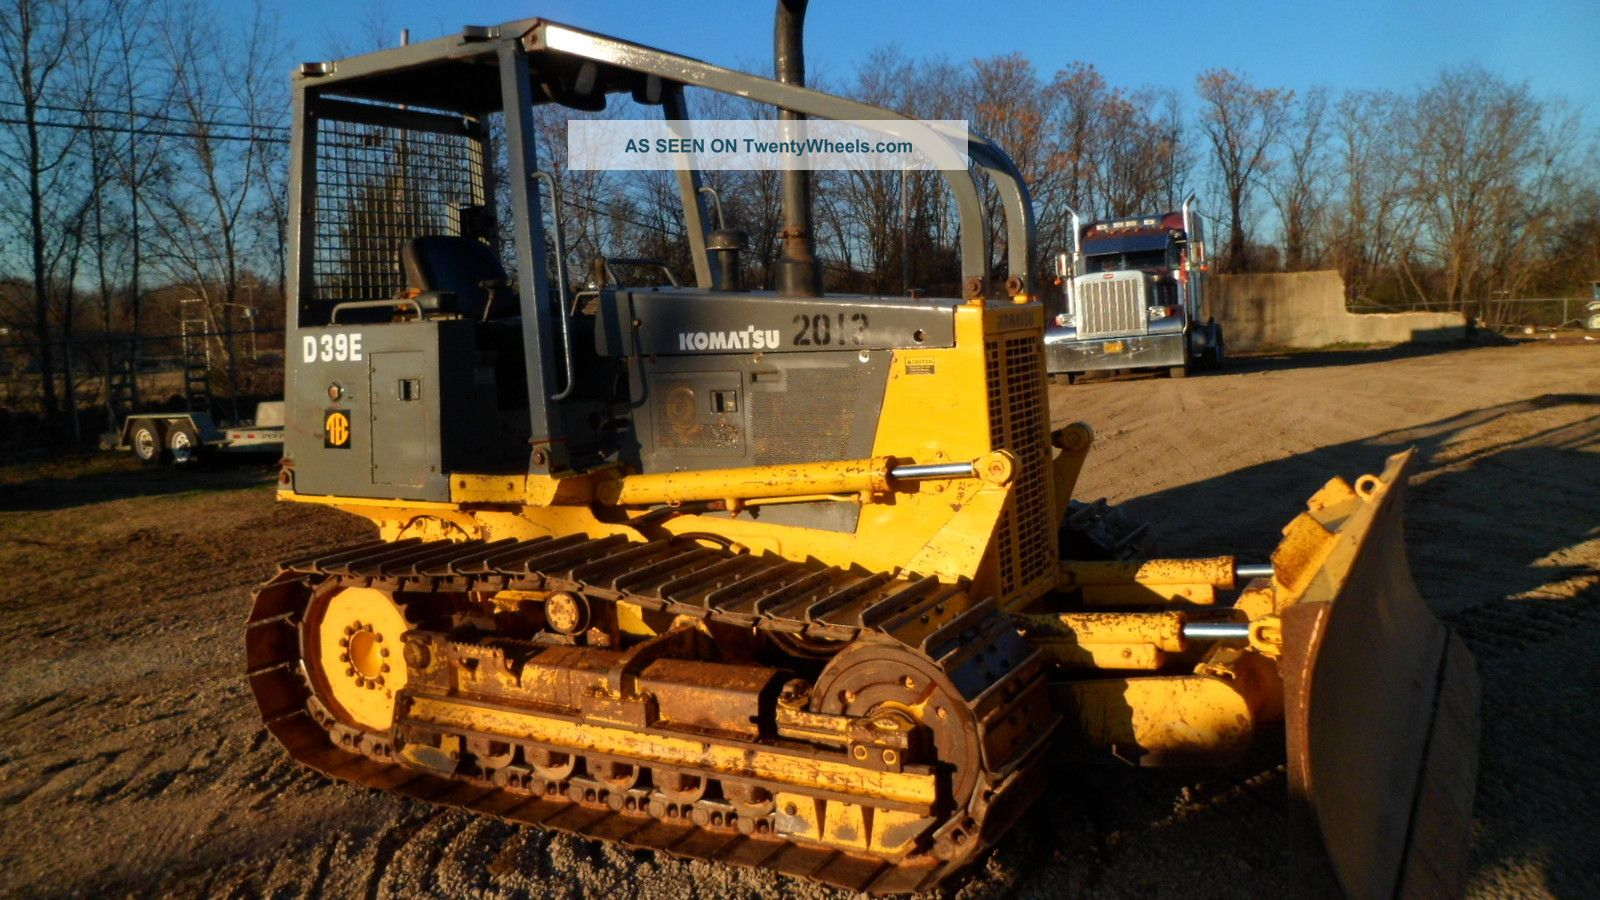 1998 Komatsu D39e - 1 Dozer - Crawler Tractor - Joy Stick Steering Crawler Dozers & Loaders photo